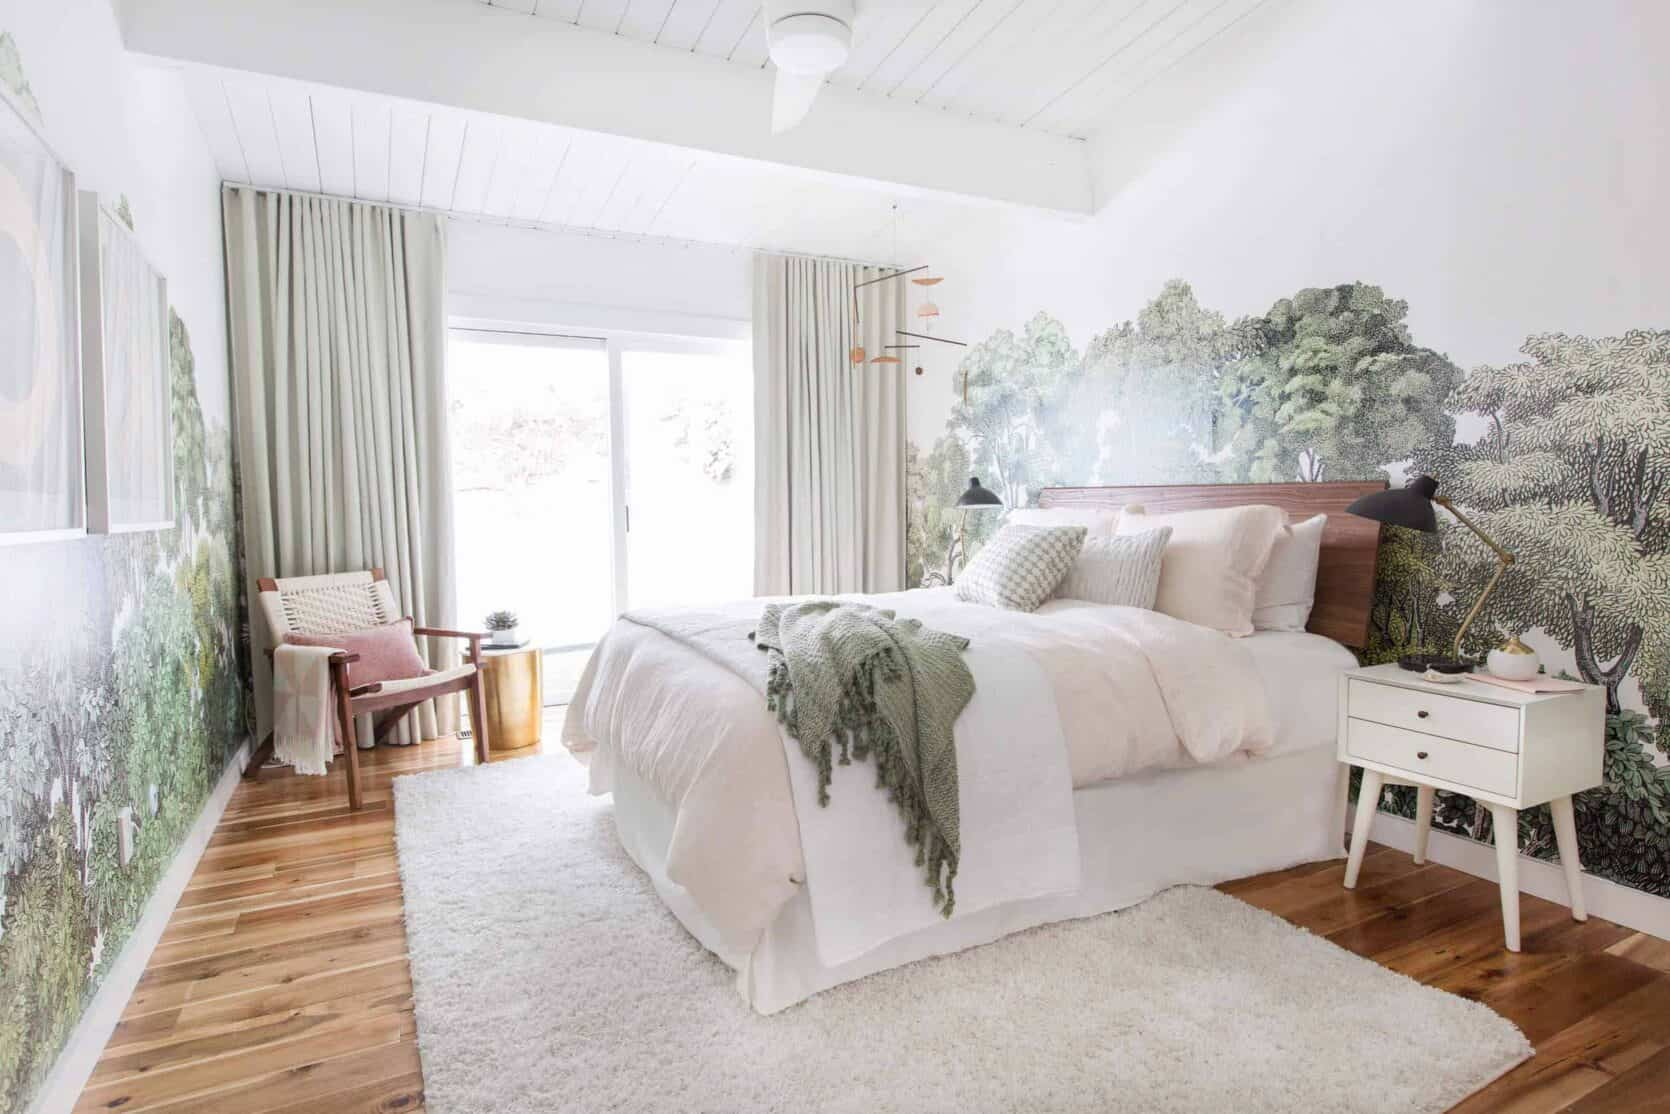 Design 101: What's The Difference Between Bed Blankets, Bedspreads, and Coverlets?? Best Children's Lighting & Home Decor Online Store